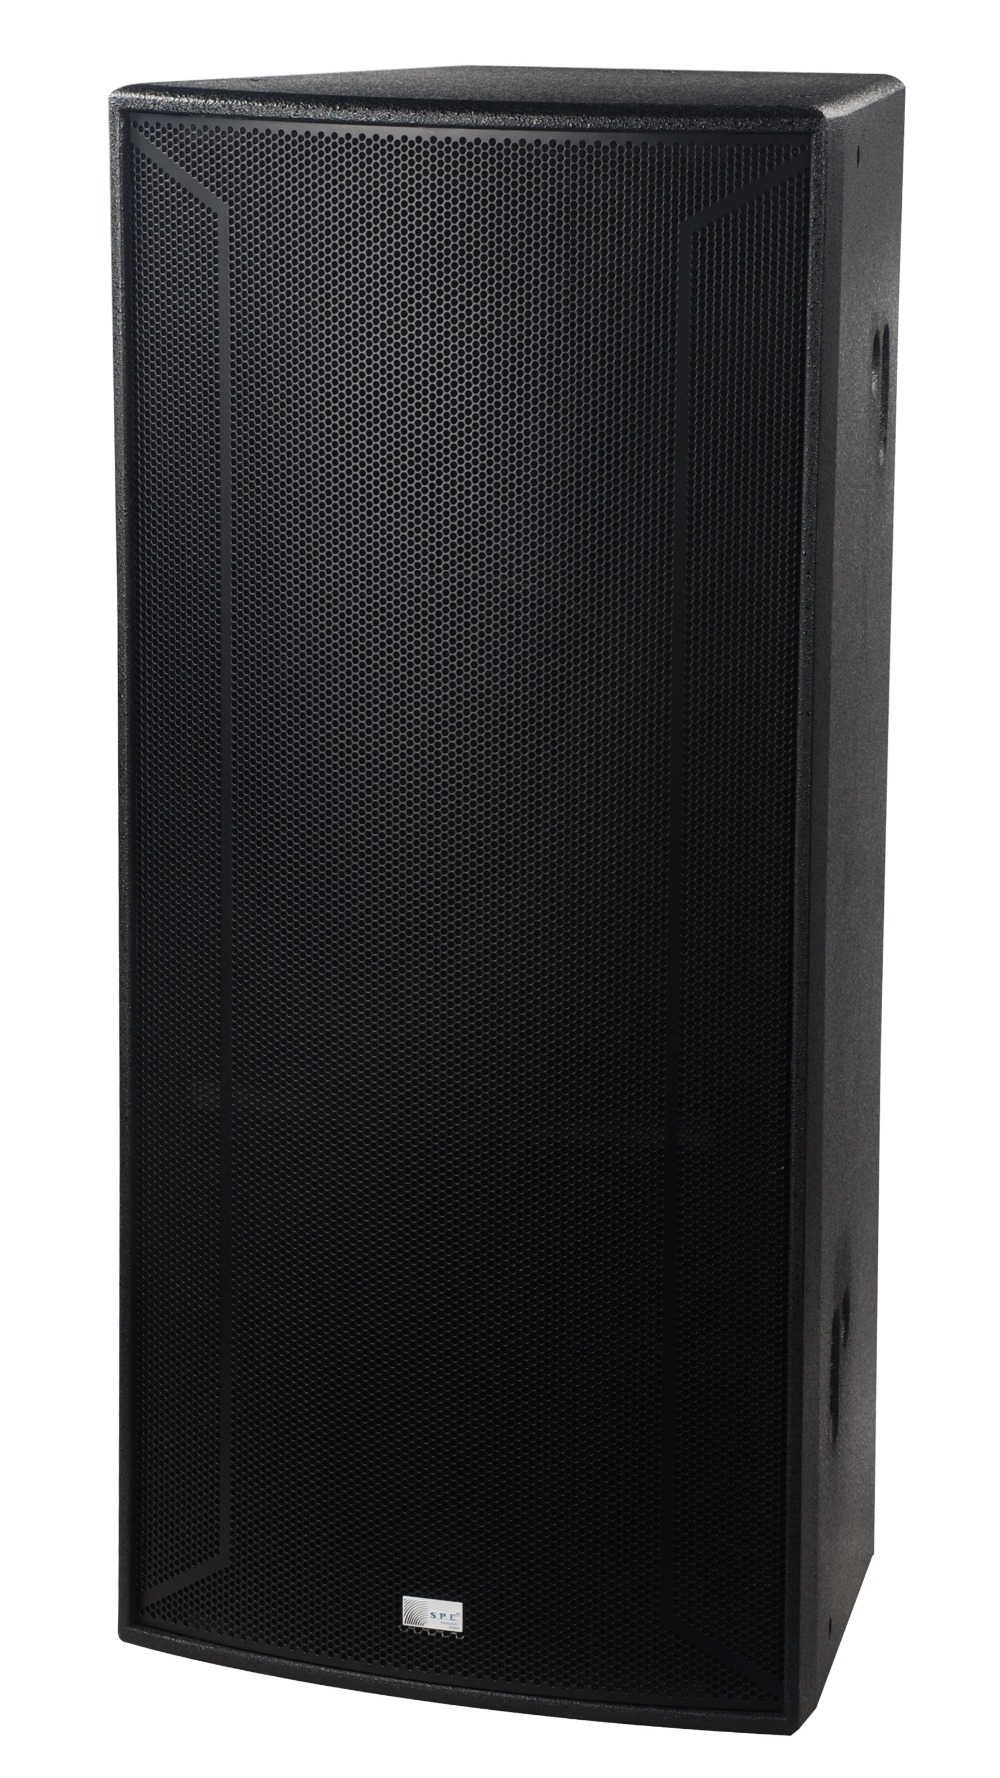 Top Pro Audio Loudspeaker St-215 Dual 15 Blg Audio Speaker